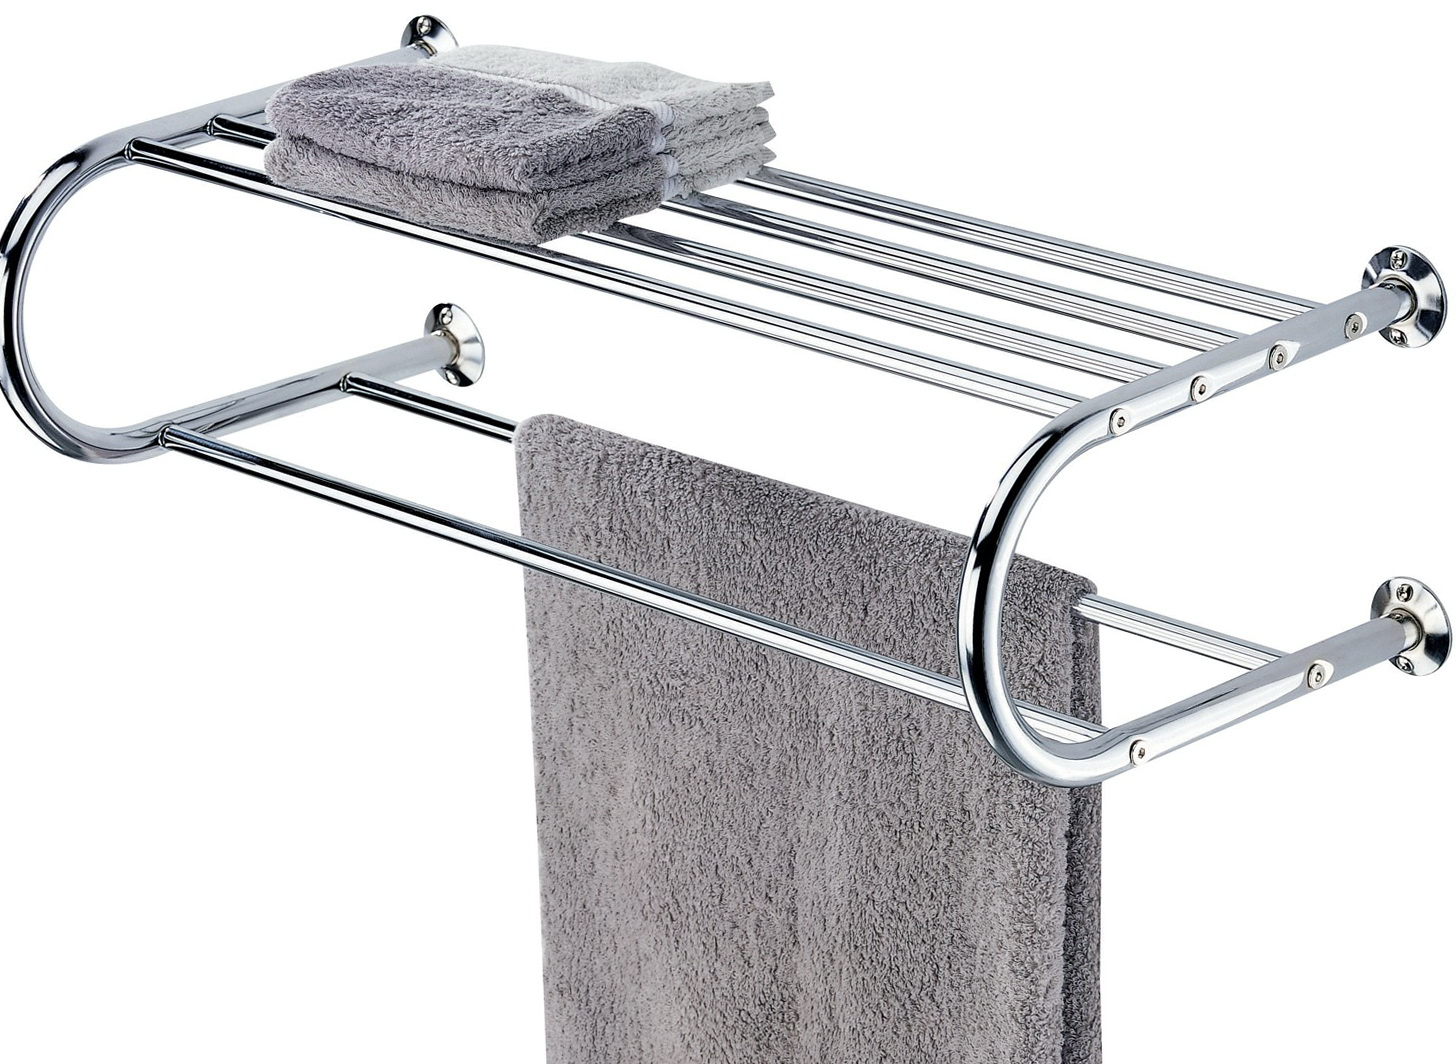 Bathroom Towel Racks With Shelves